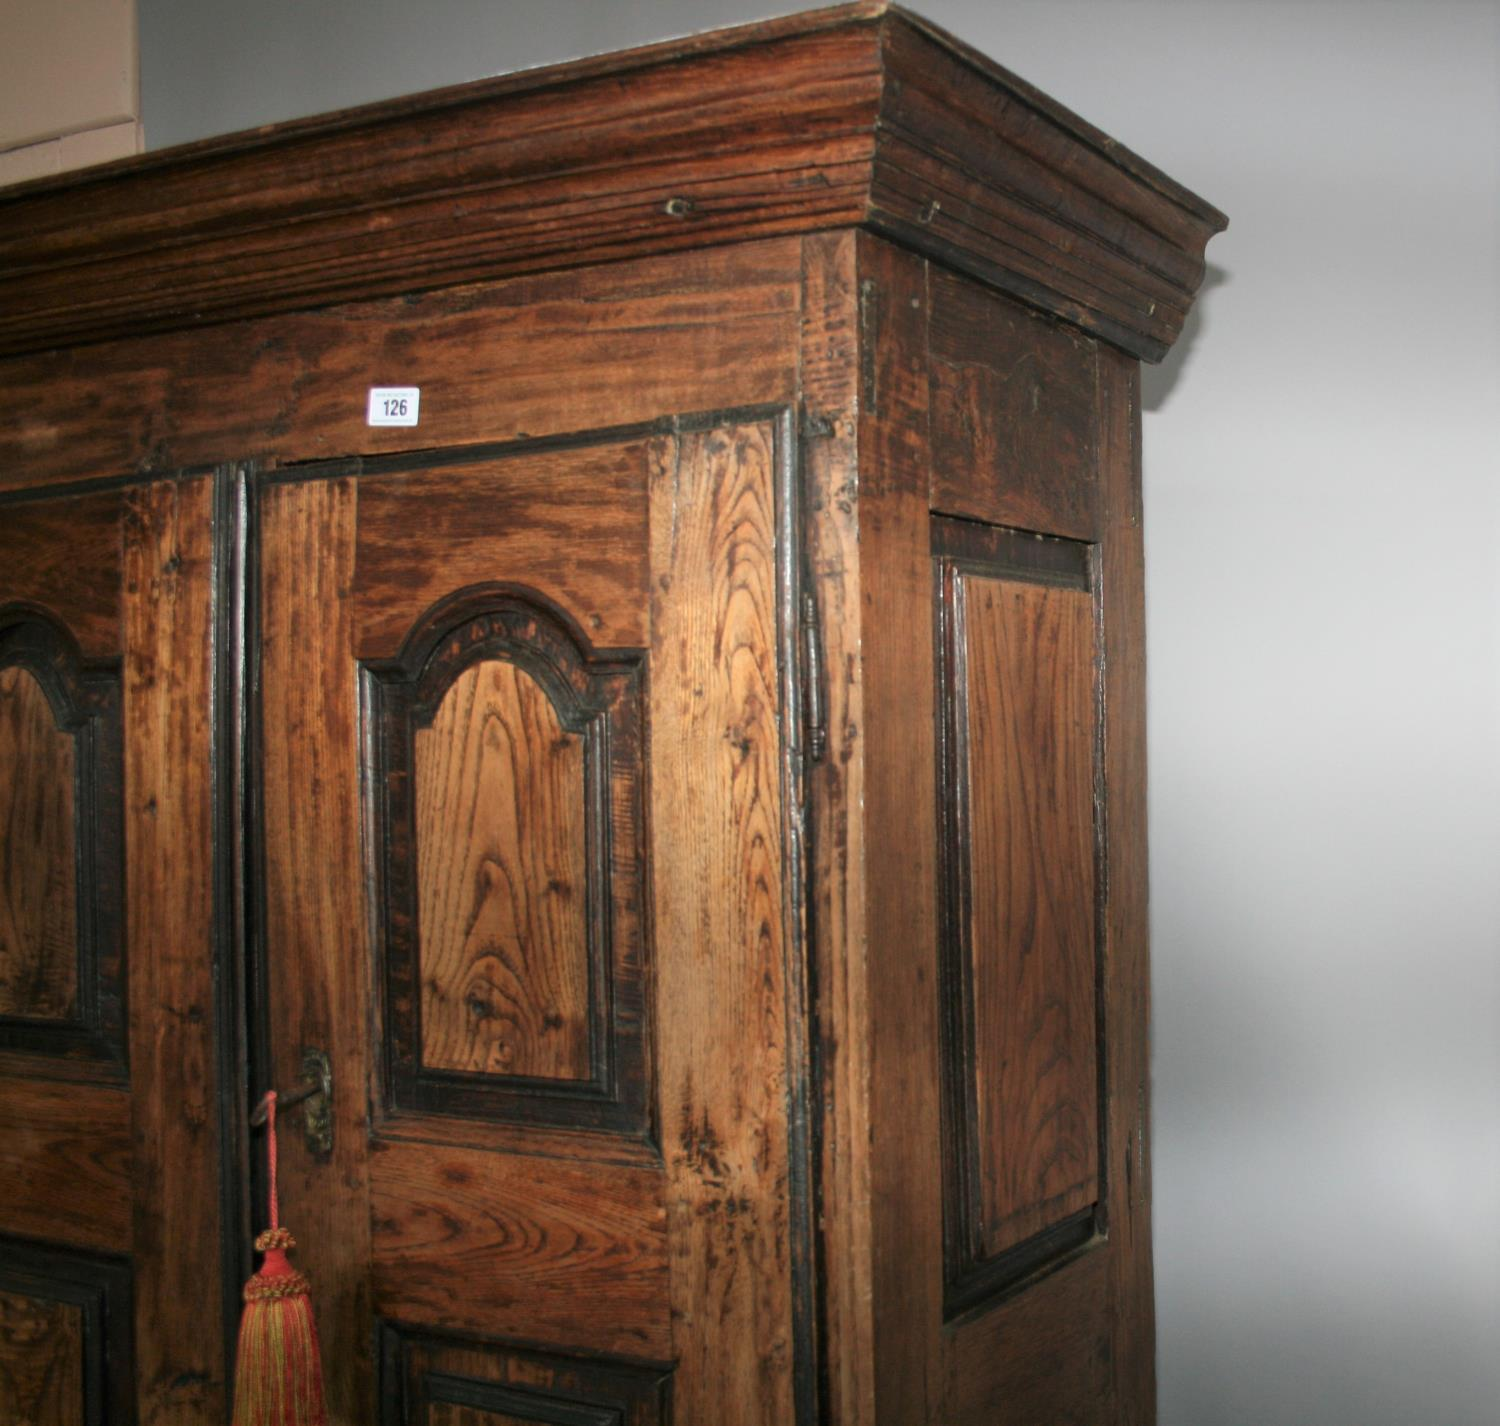 17th Century oak armoire with panel door and sides. 120W x 180H x 52D - Image 2 of 5